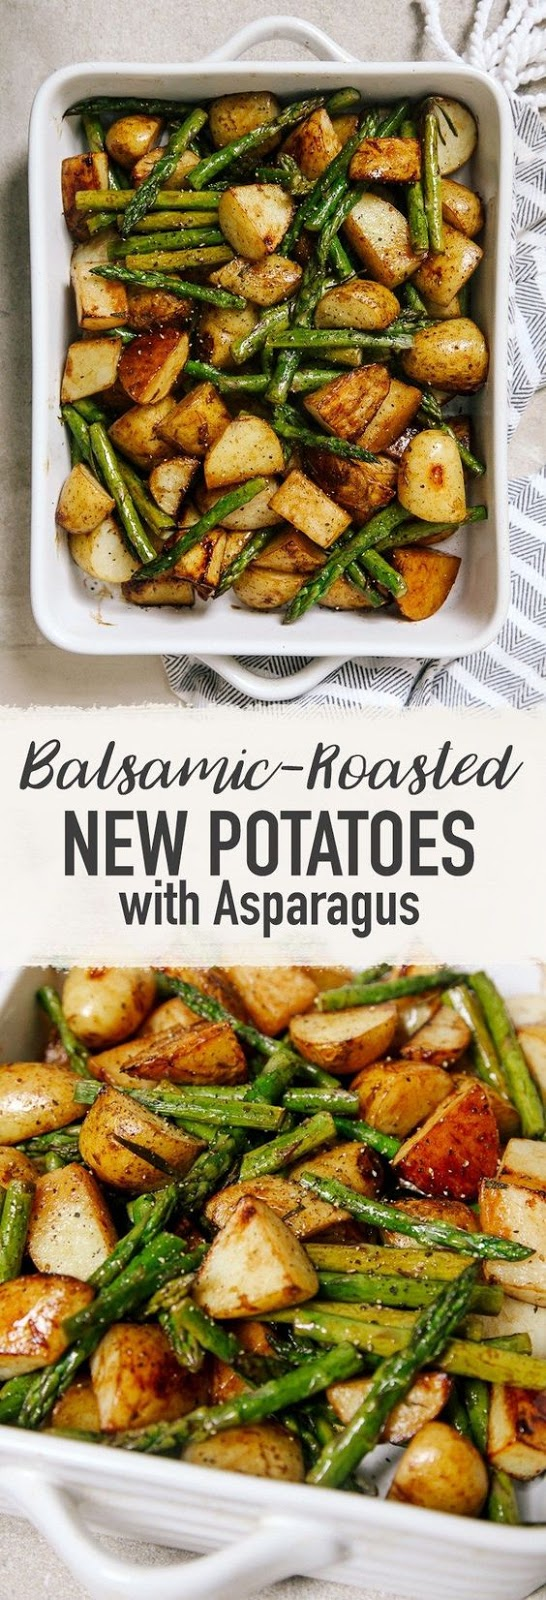 BALSAMIC ROASTED NEW POTATOES WITH ASPARAGUS #balsamic #roasted #potatoes #asparagus #veggies #vegetarianrecipes #veganrecipes